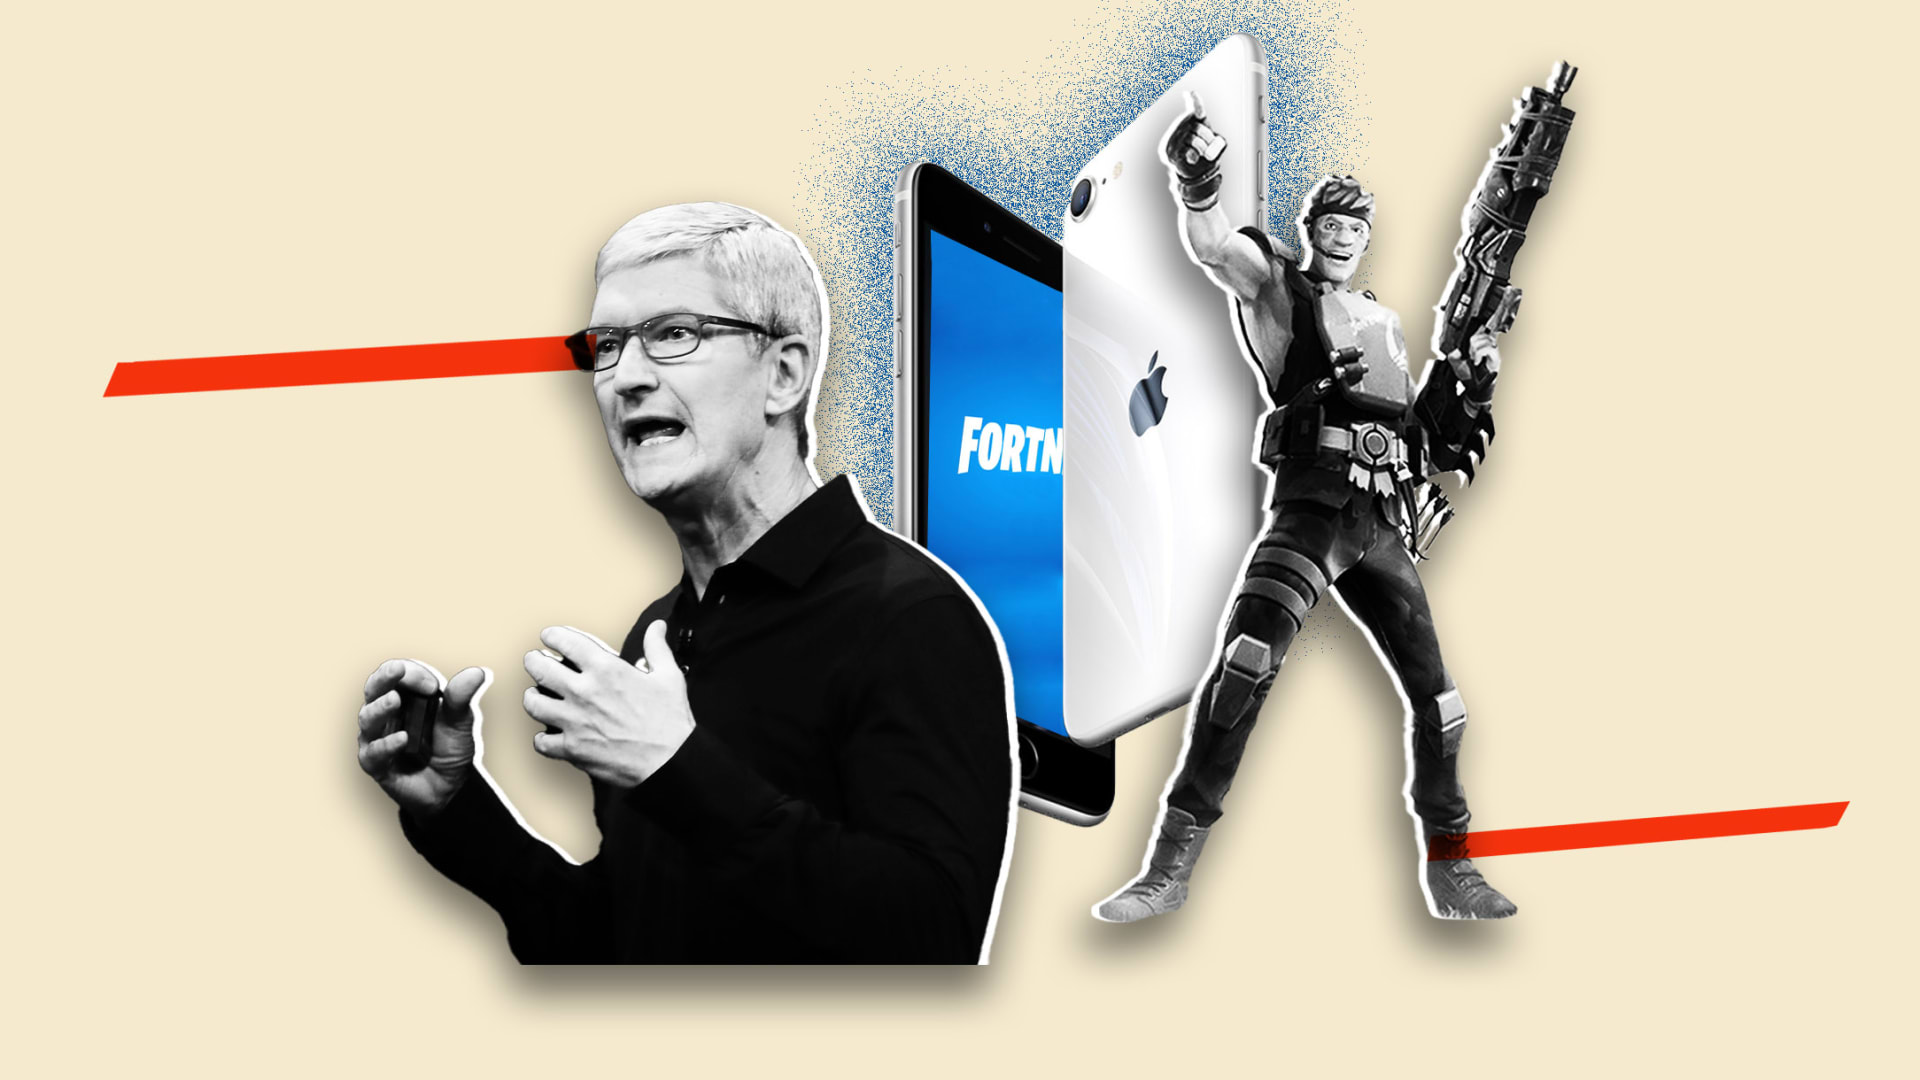 6 Fascinating Findings From the Epic Games v. Apple Trial